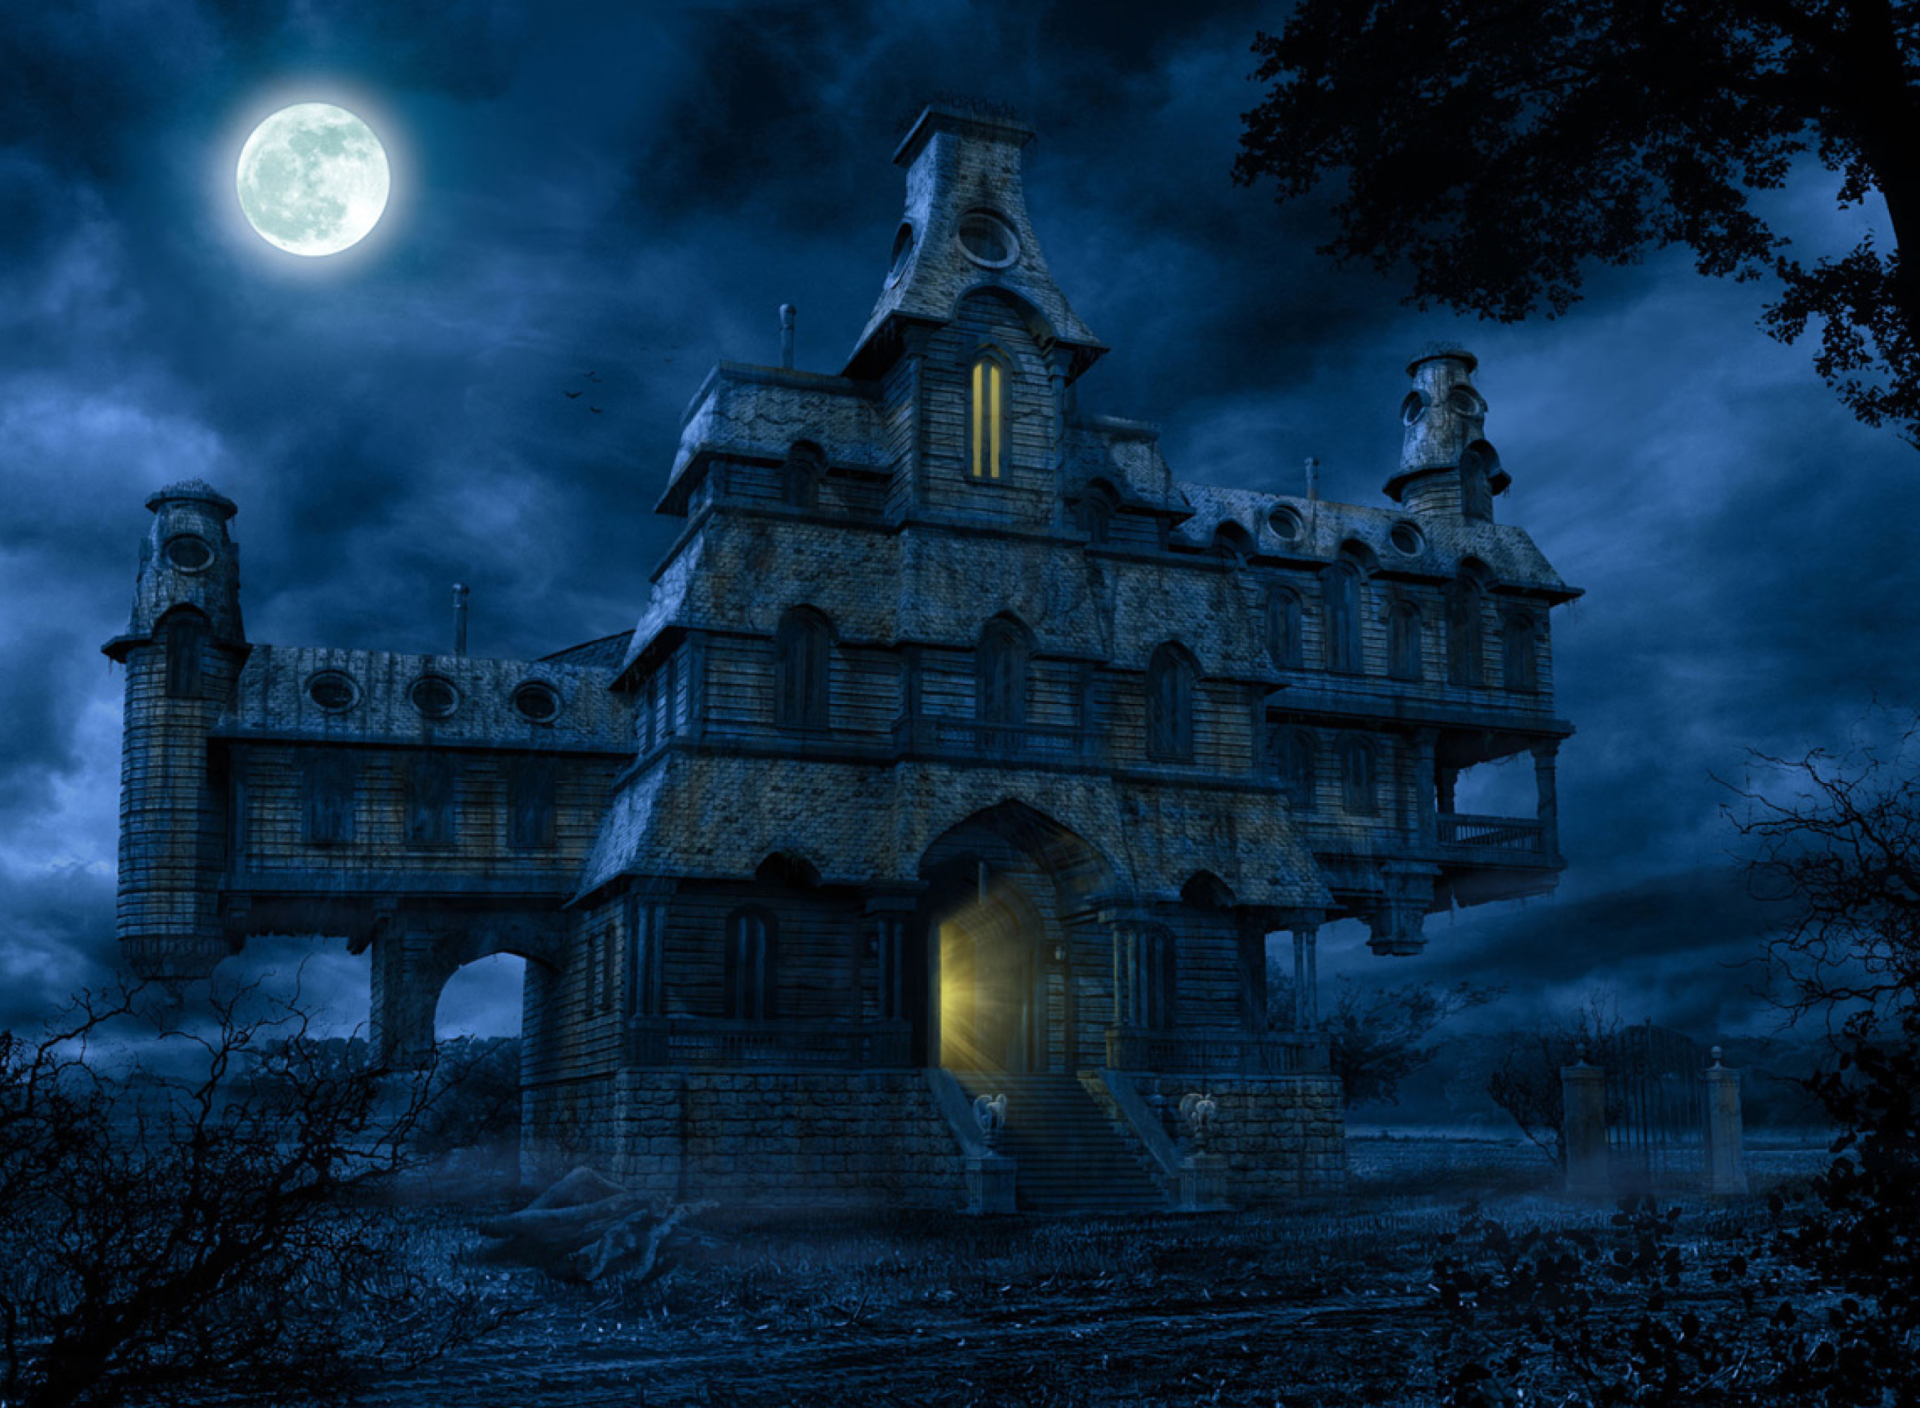 the haunted house Denver's largest haunted house, the 13th floor this halloween season, explore the legend of the 13th floor at one of the most horrifying haunted house experiences ever, the 13th floor haunted house.